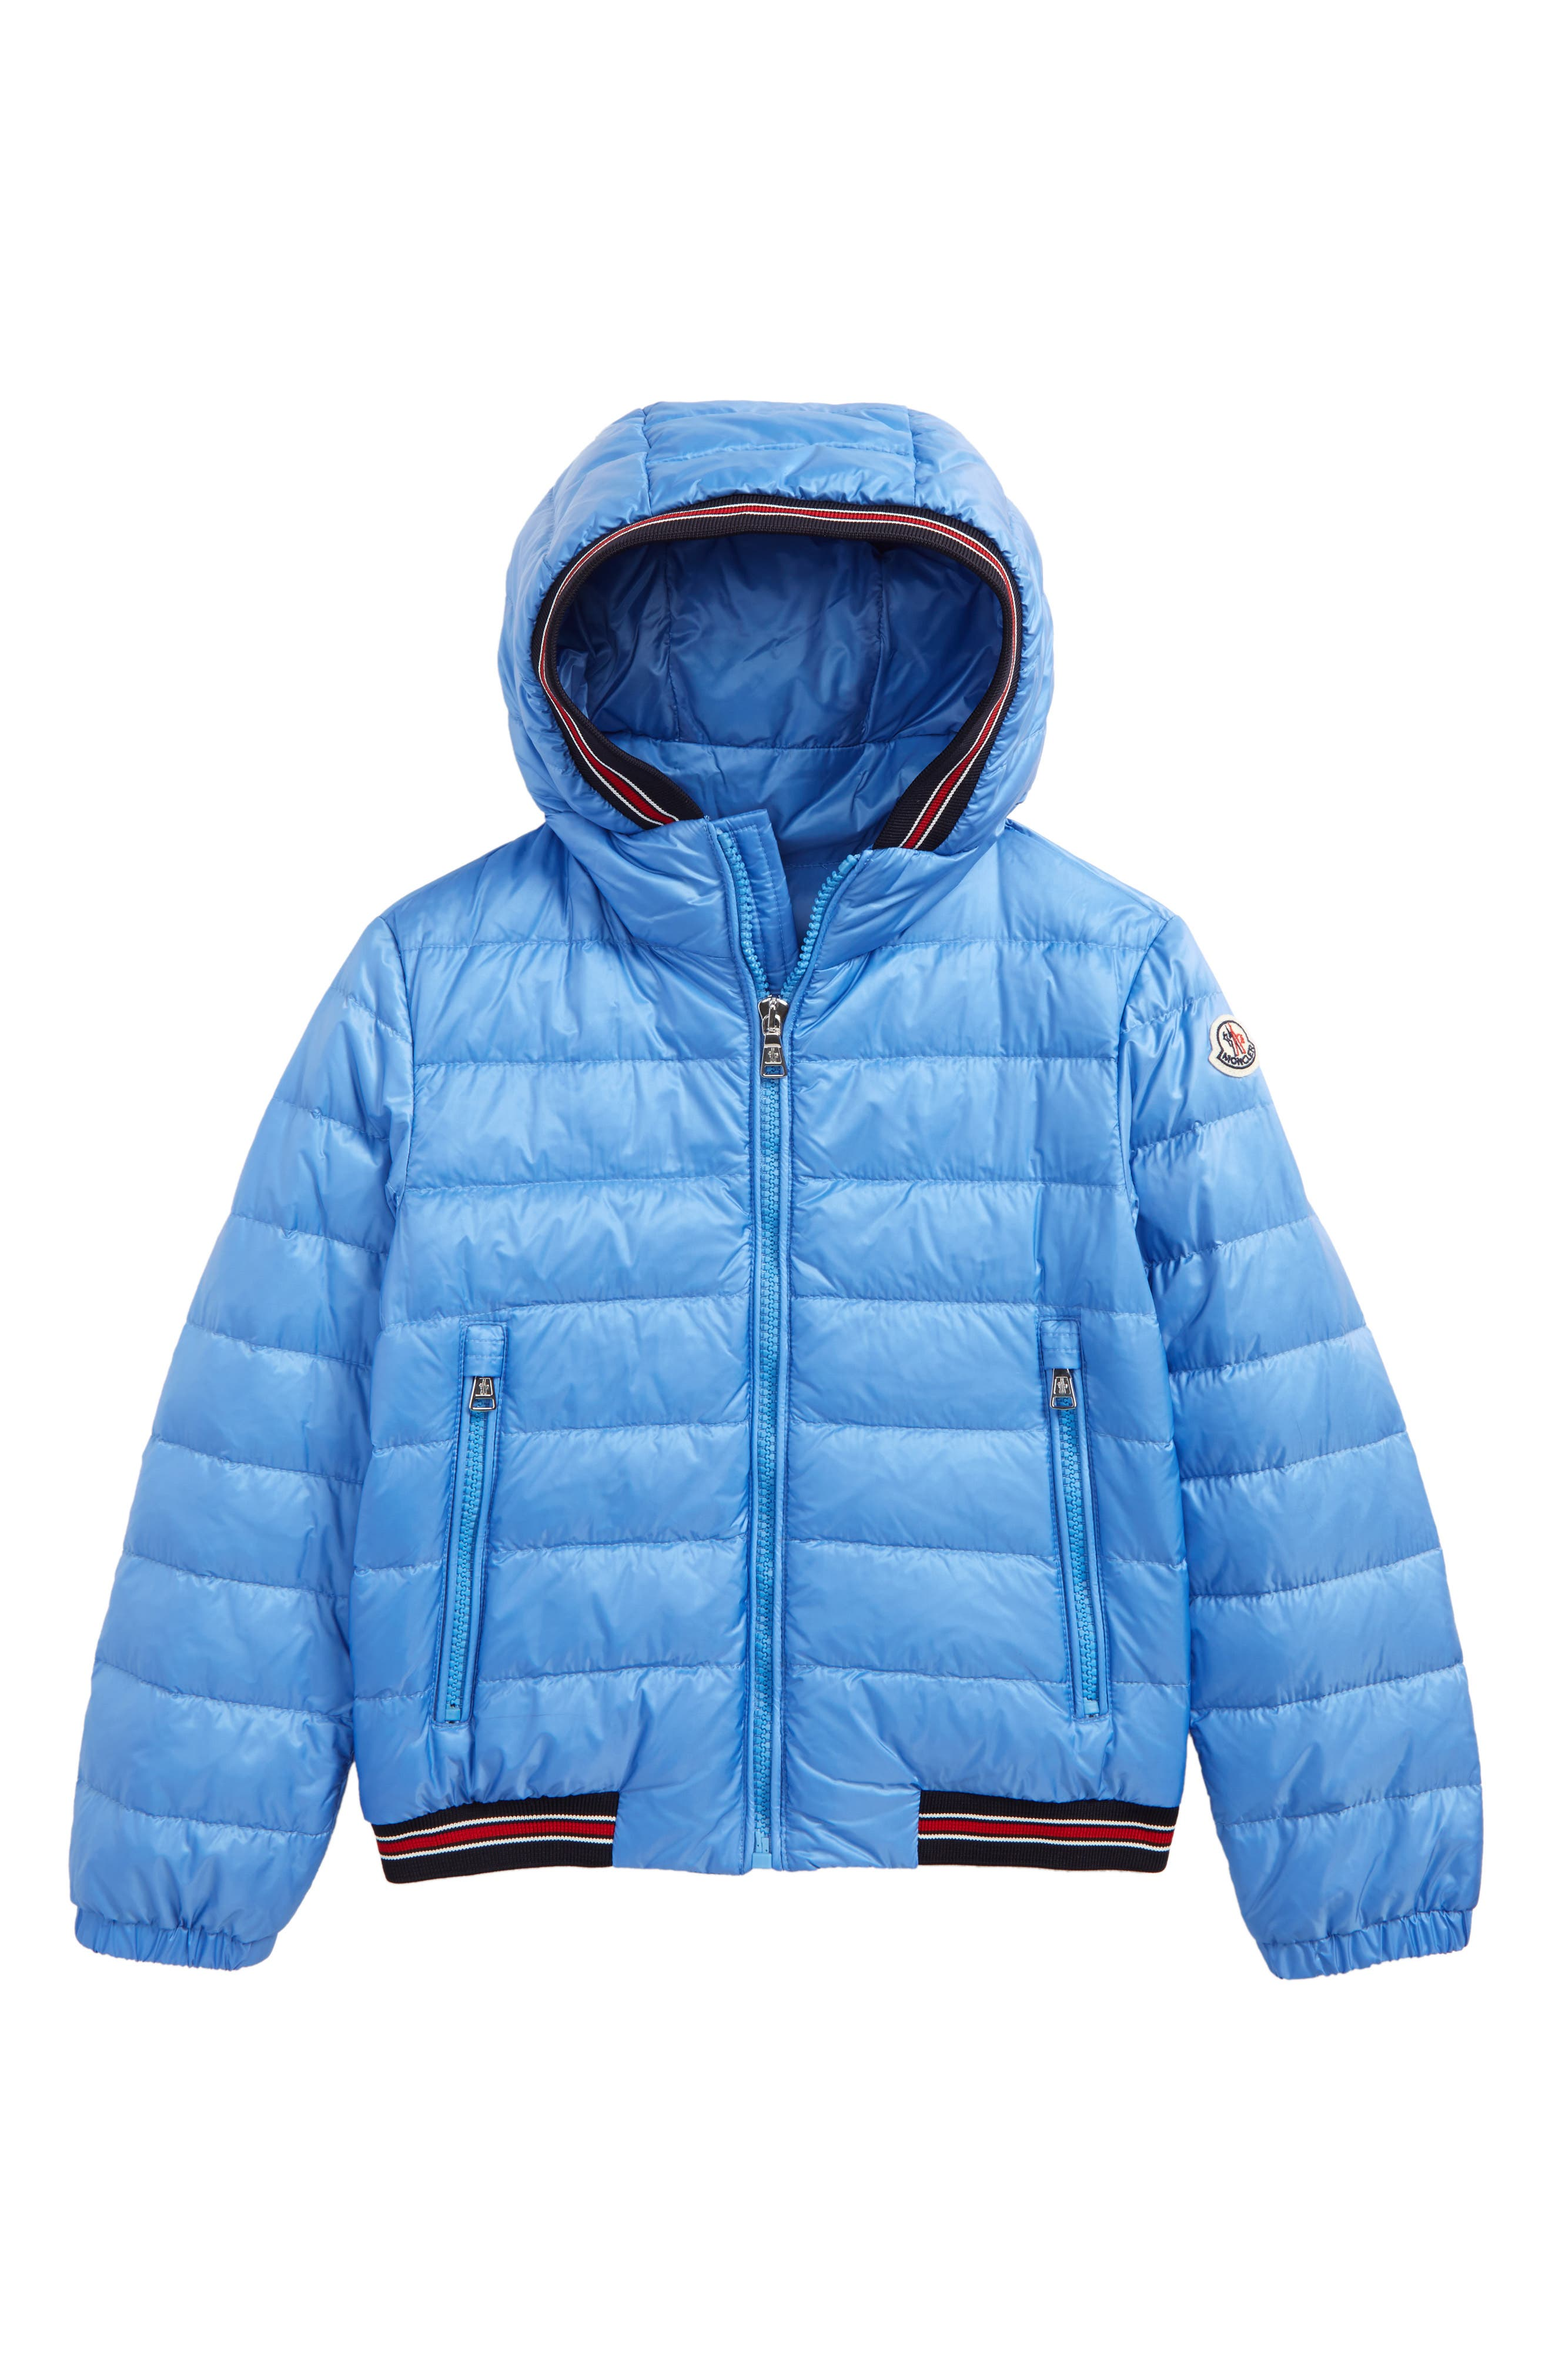 Eliot Hooded Goose Down Jacket,                             Main thumbnail 1, color,                             450